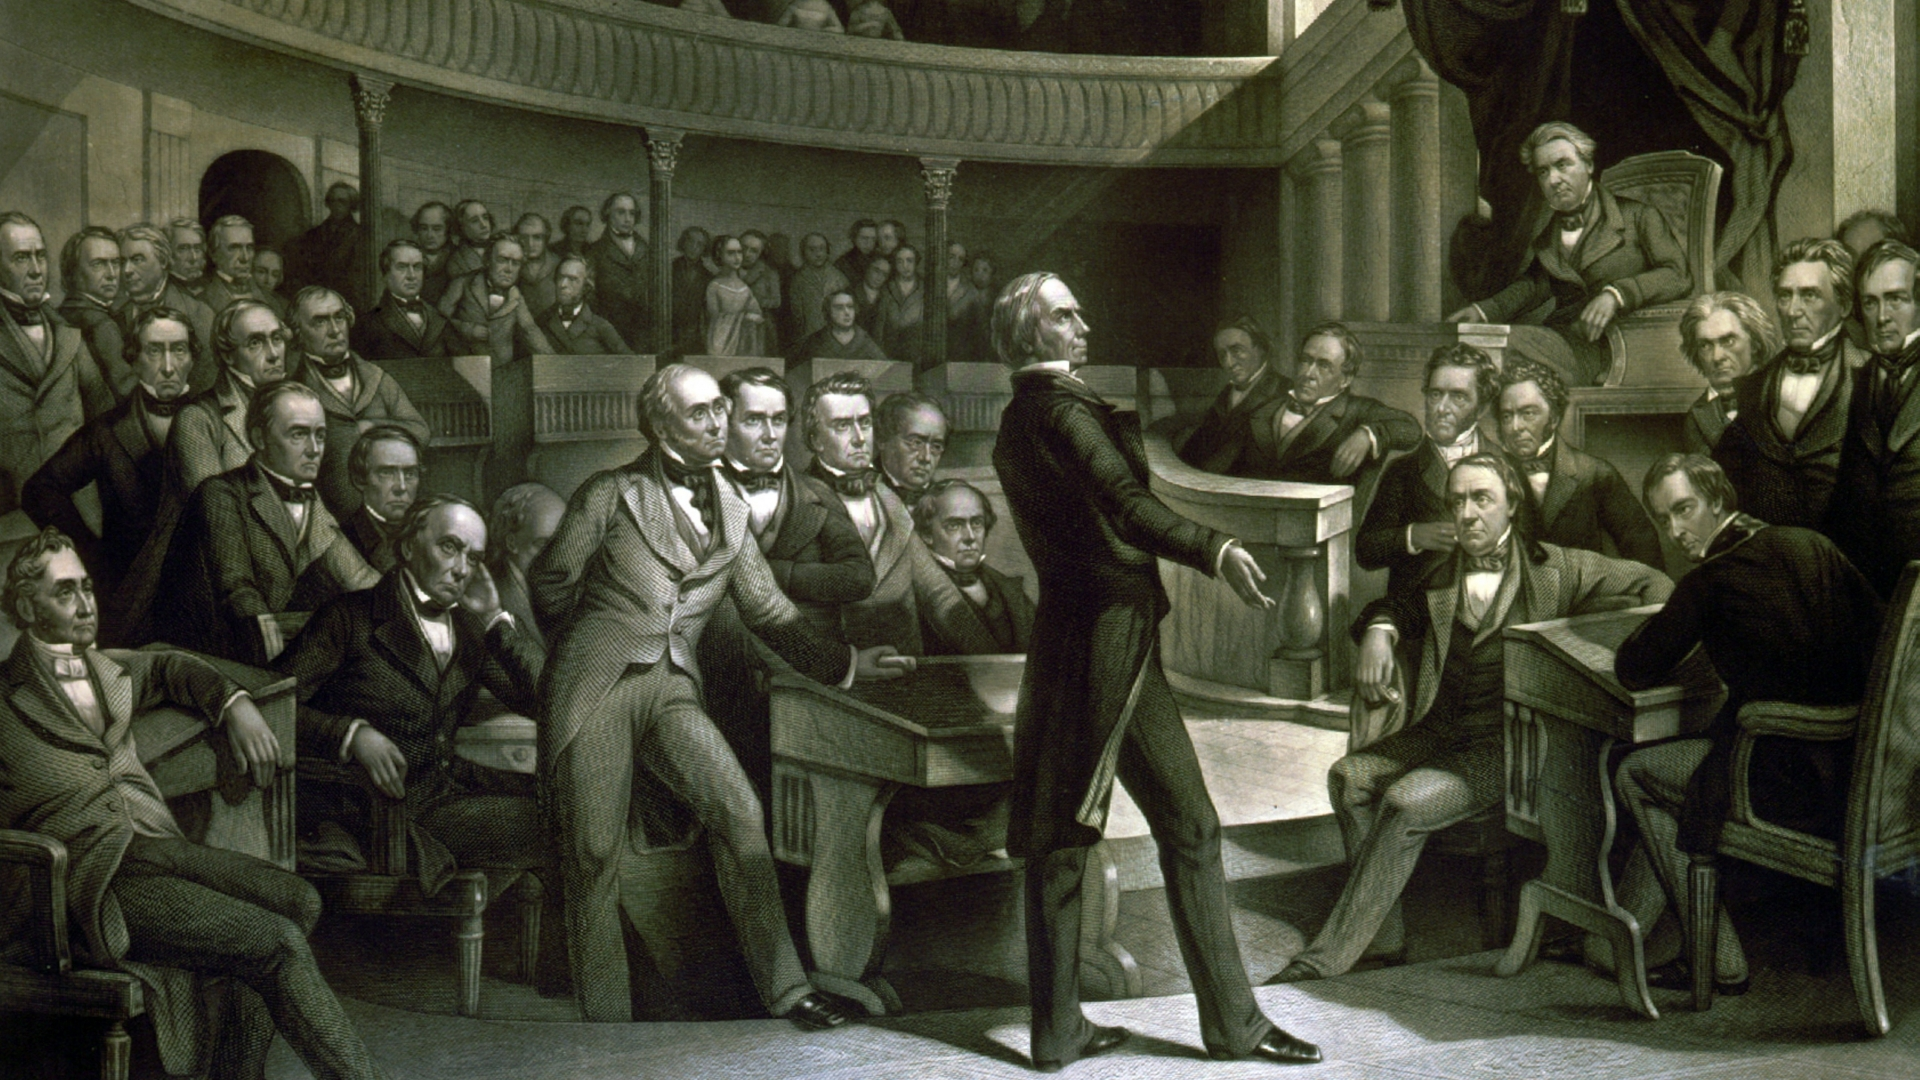 The United States Senate discussing the Compromise of 1850 in the Old Senate Chamber. (Credit: Universal History Archive/UIG via Getty images)